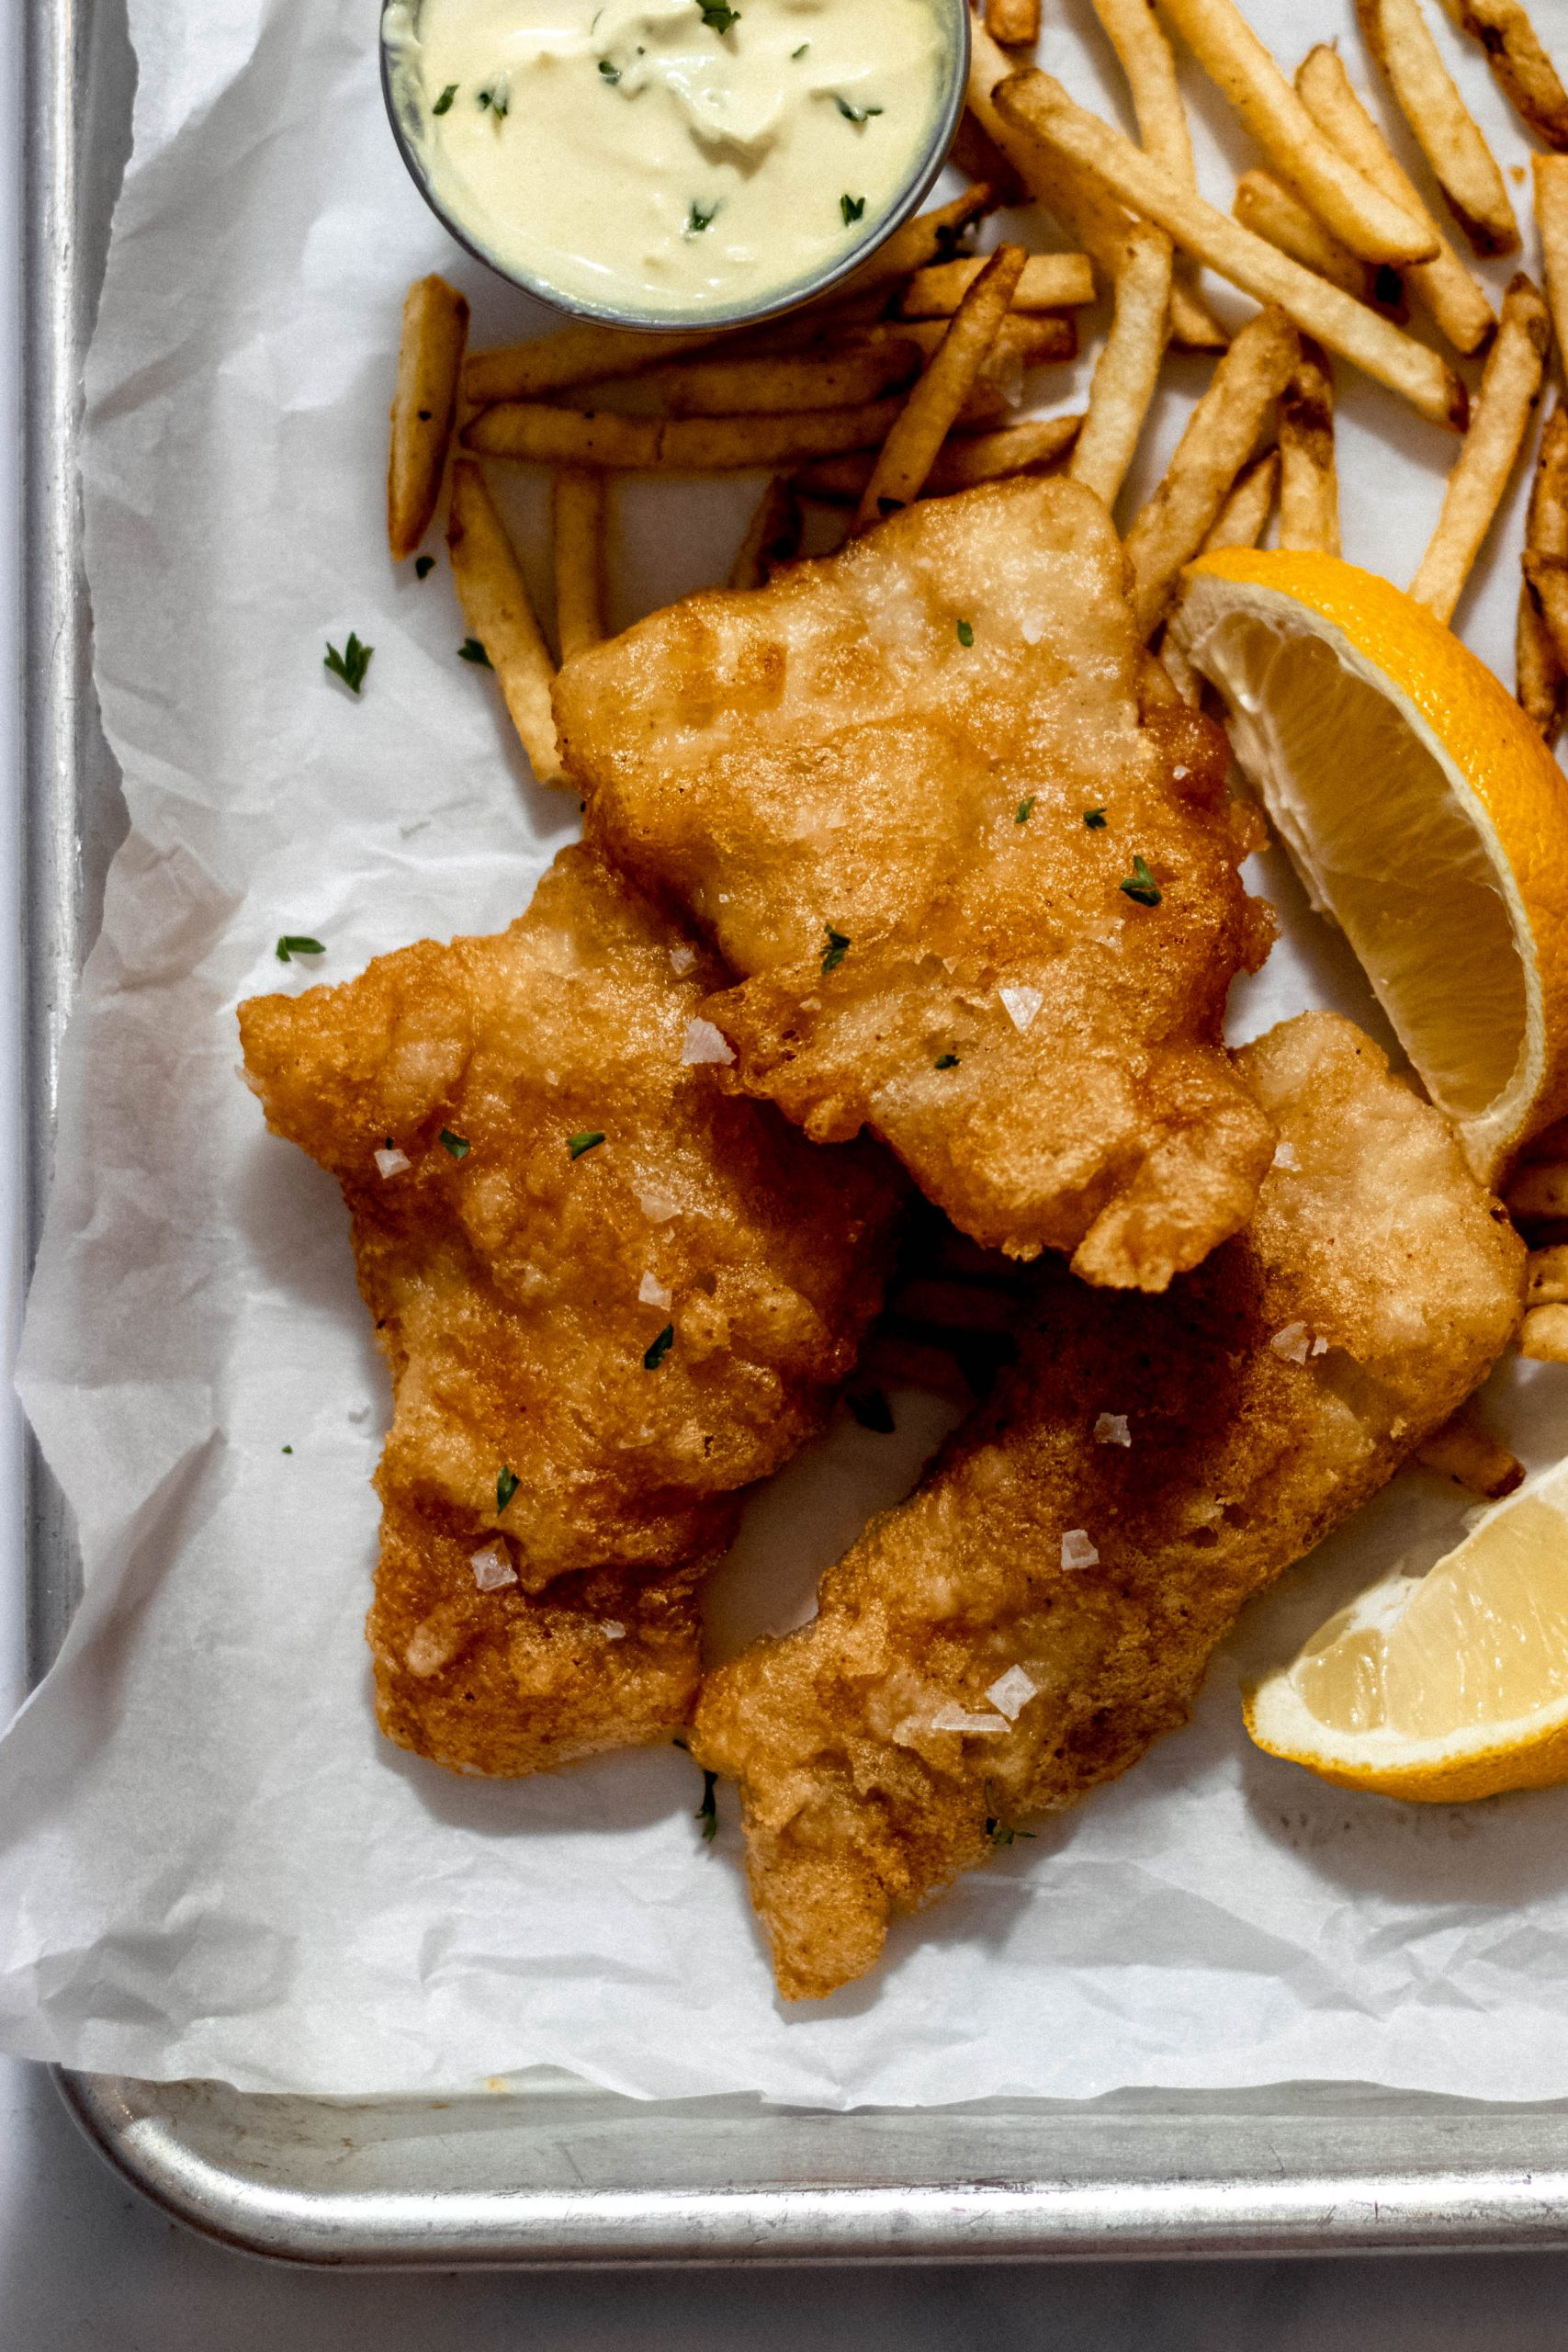 beer battered haddock, lemon wedges and chips on a parchment paper lined baking sheet